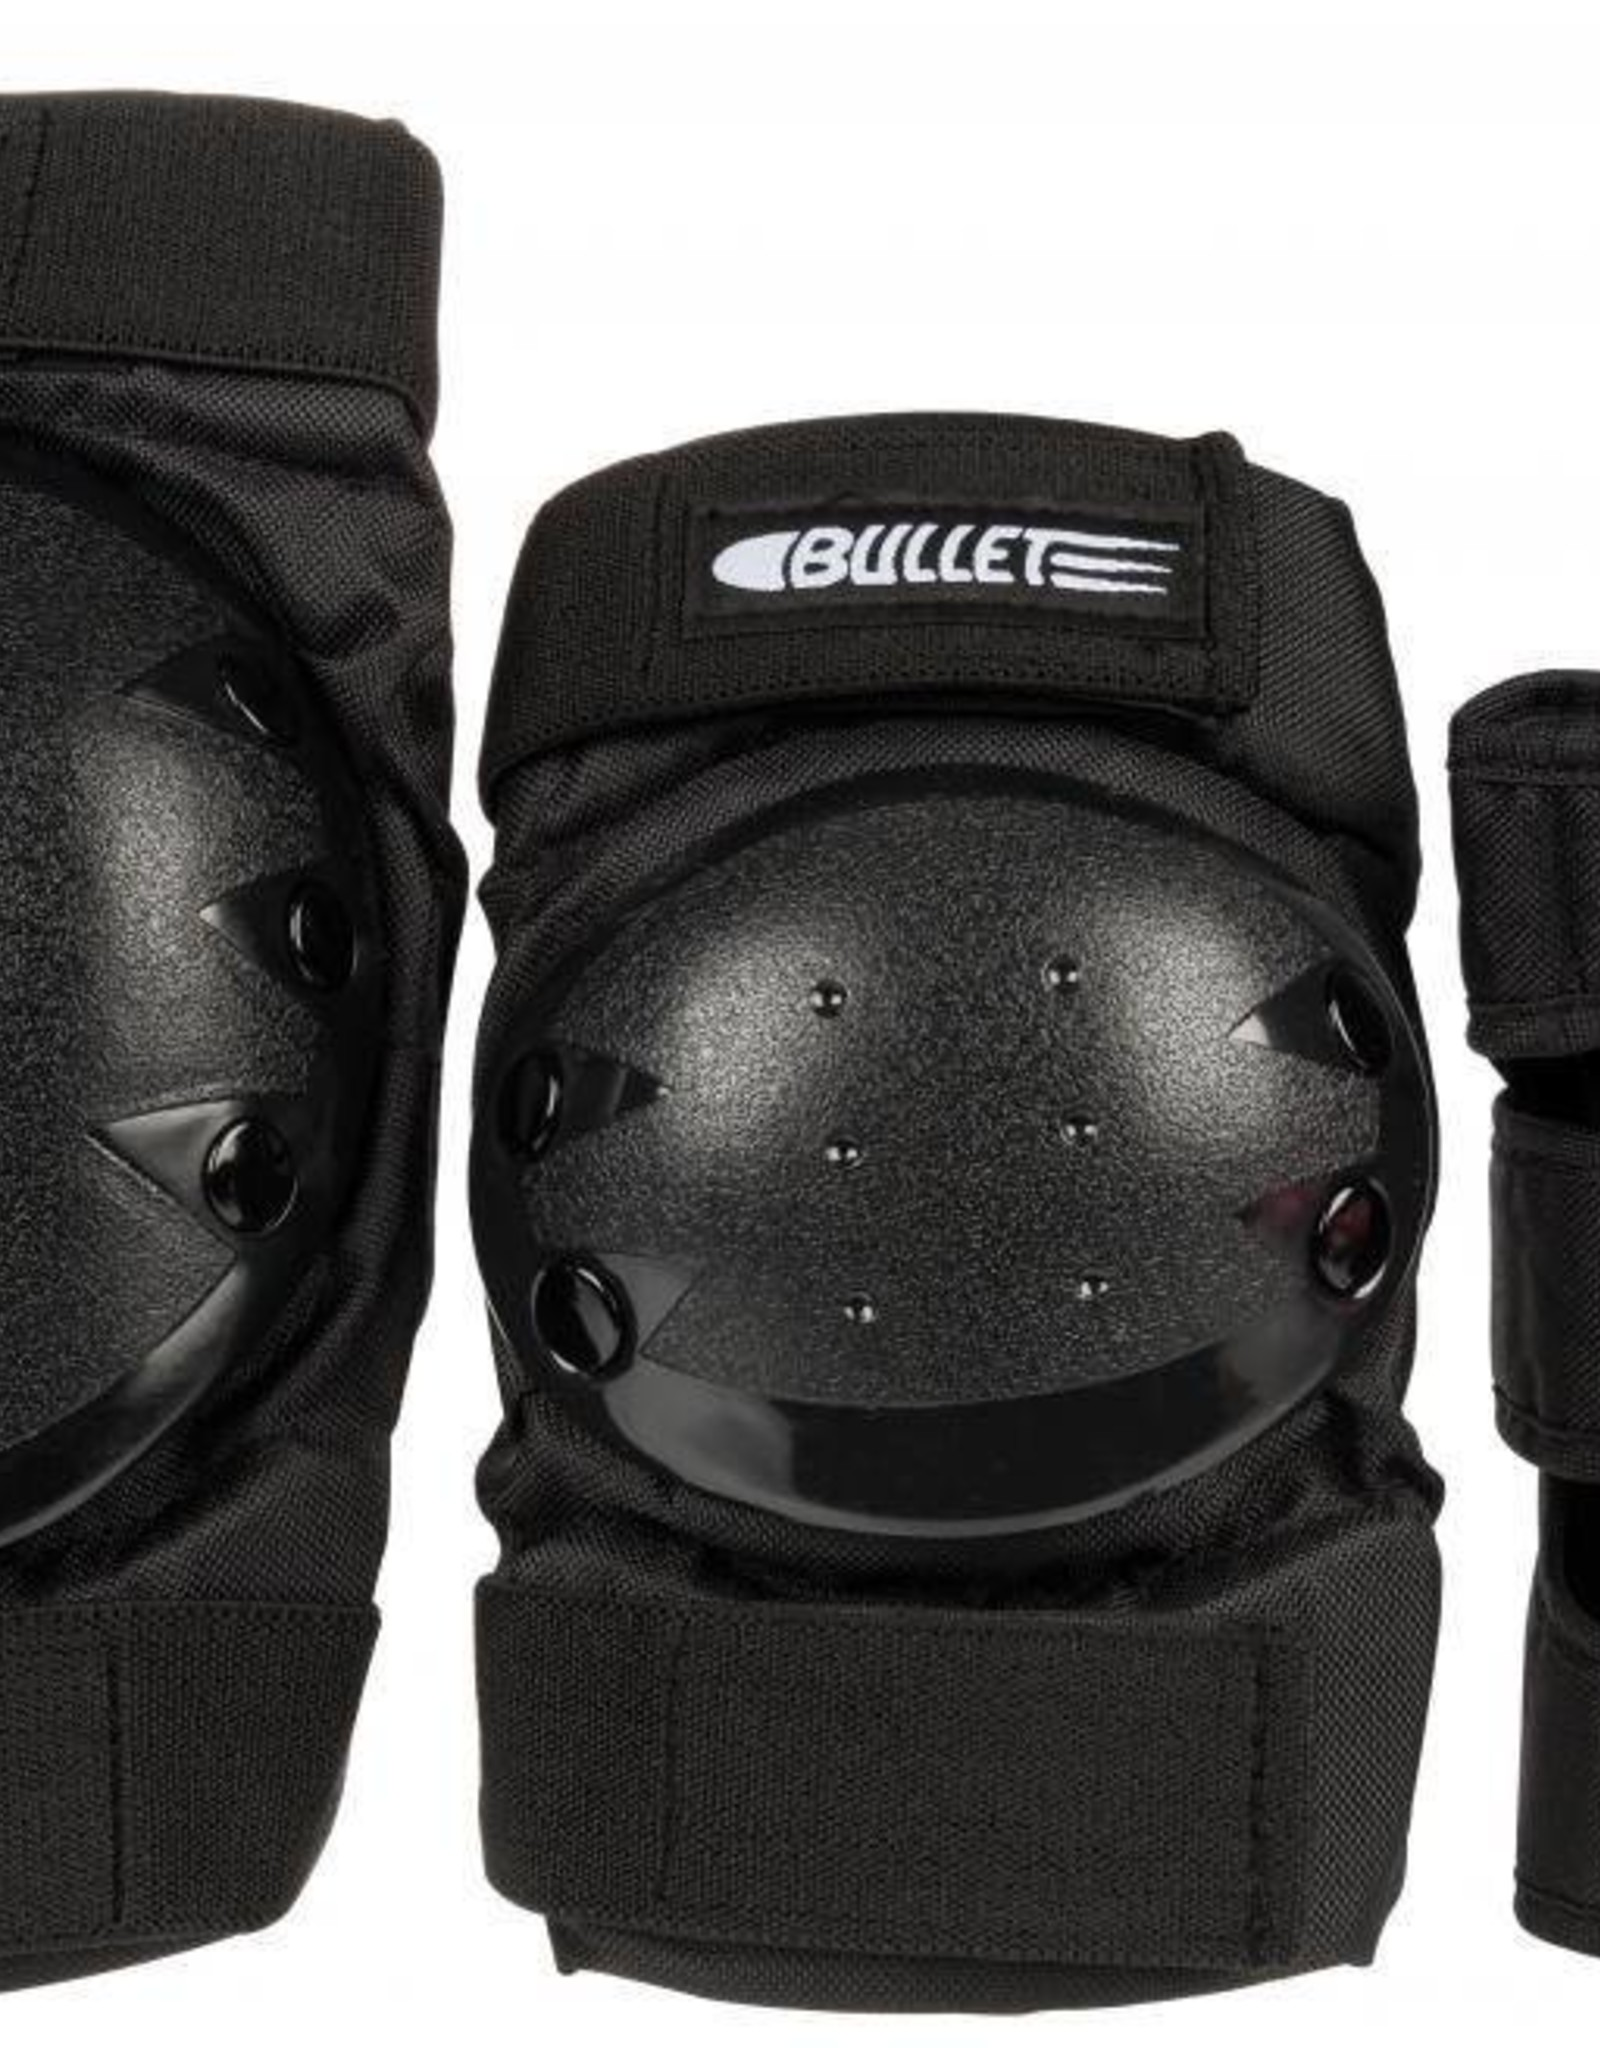 Bullet Bullet - PAD SET - Youth